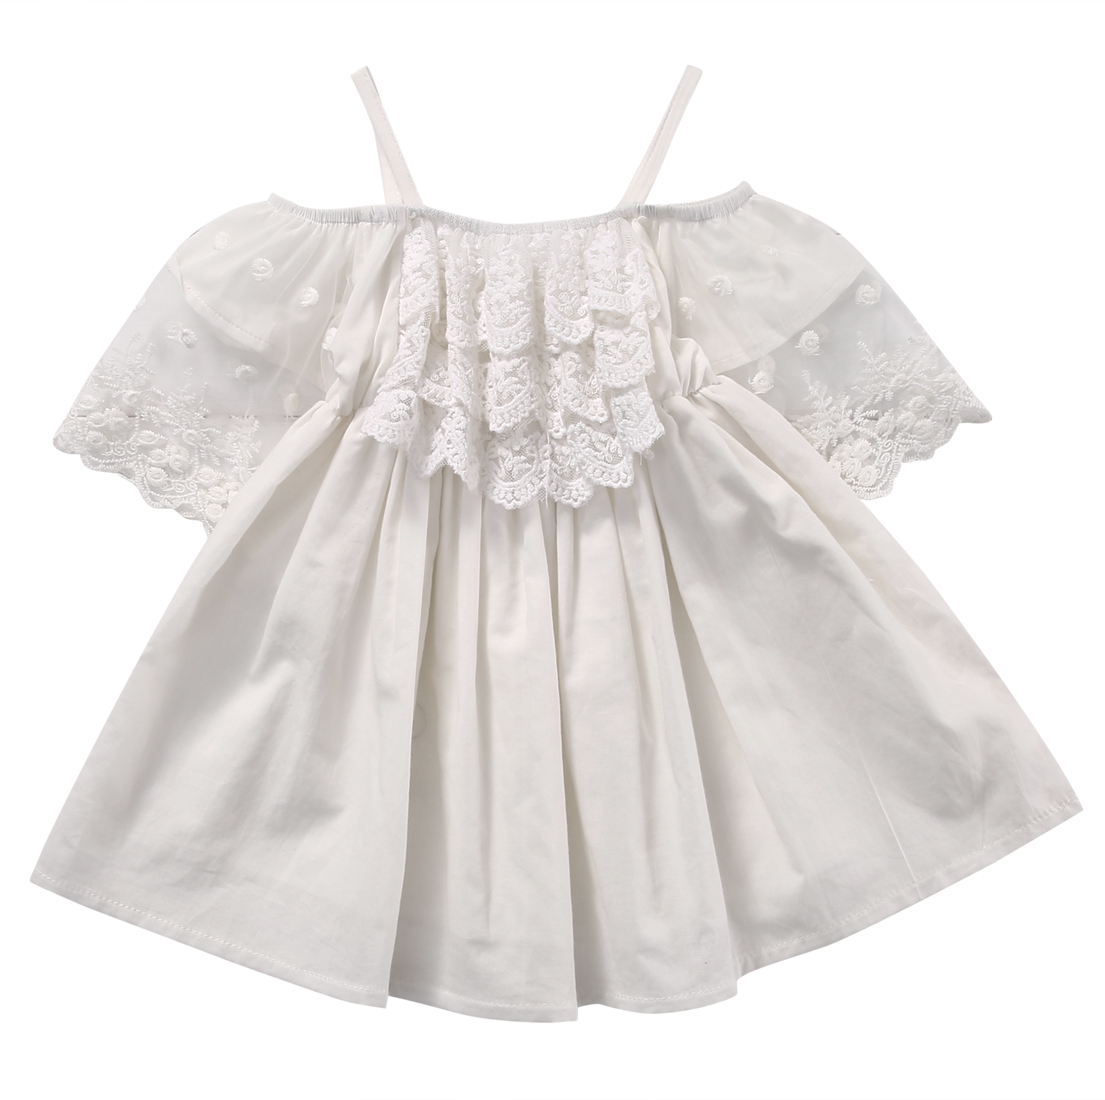 2017 Summer Kids Girls Dress Off Shoulder Ruffles Lace